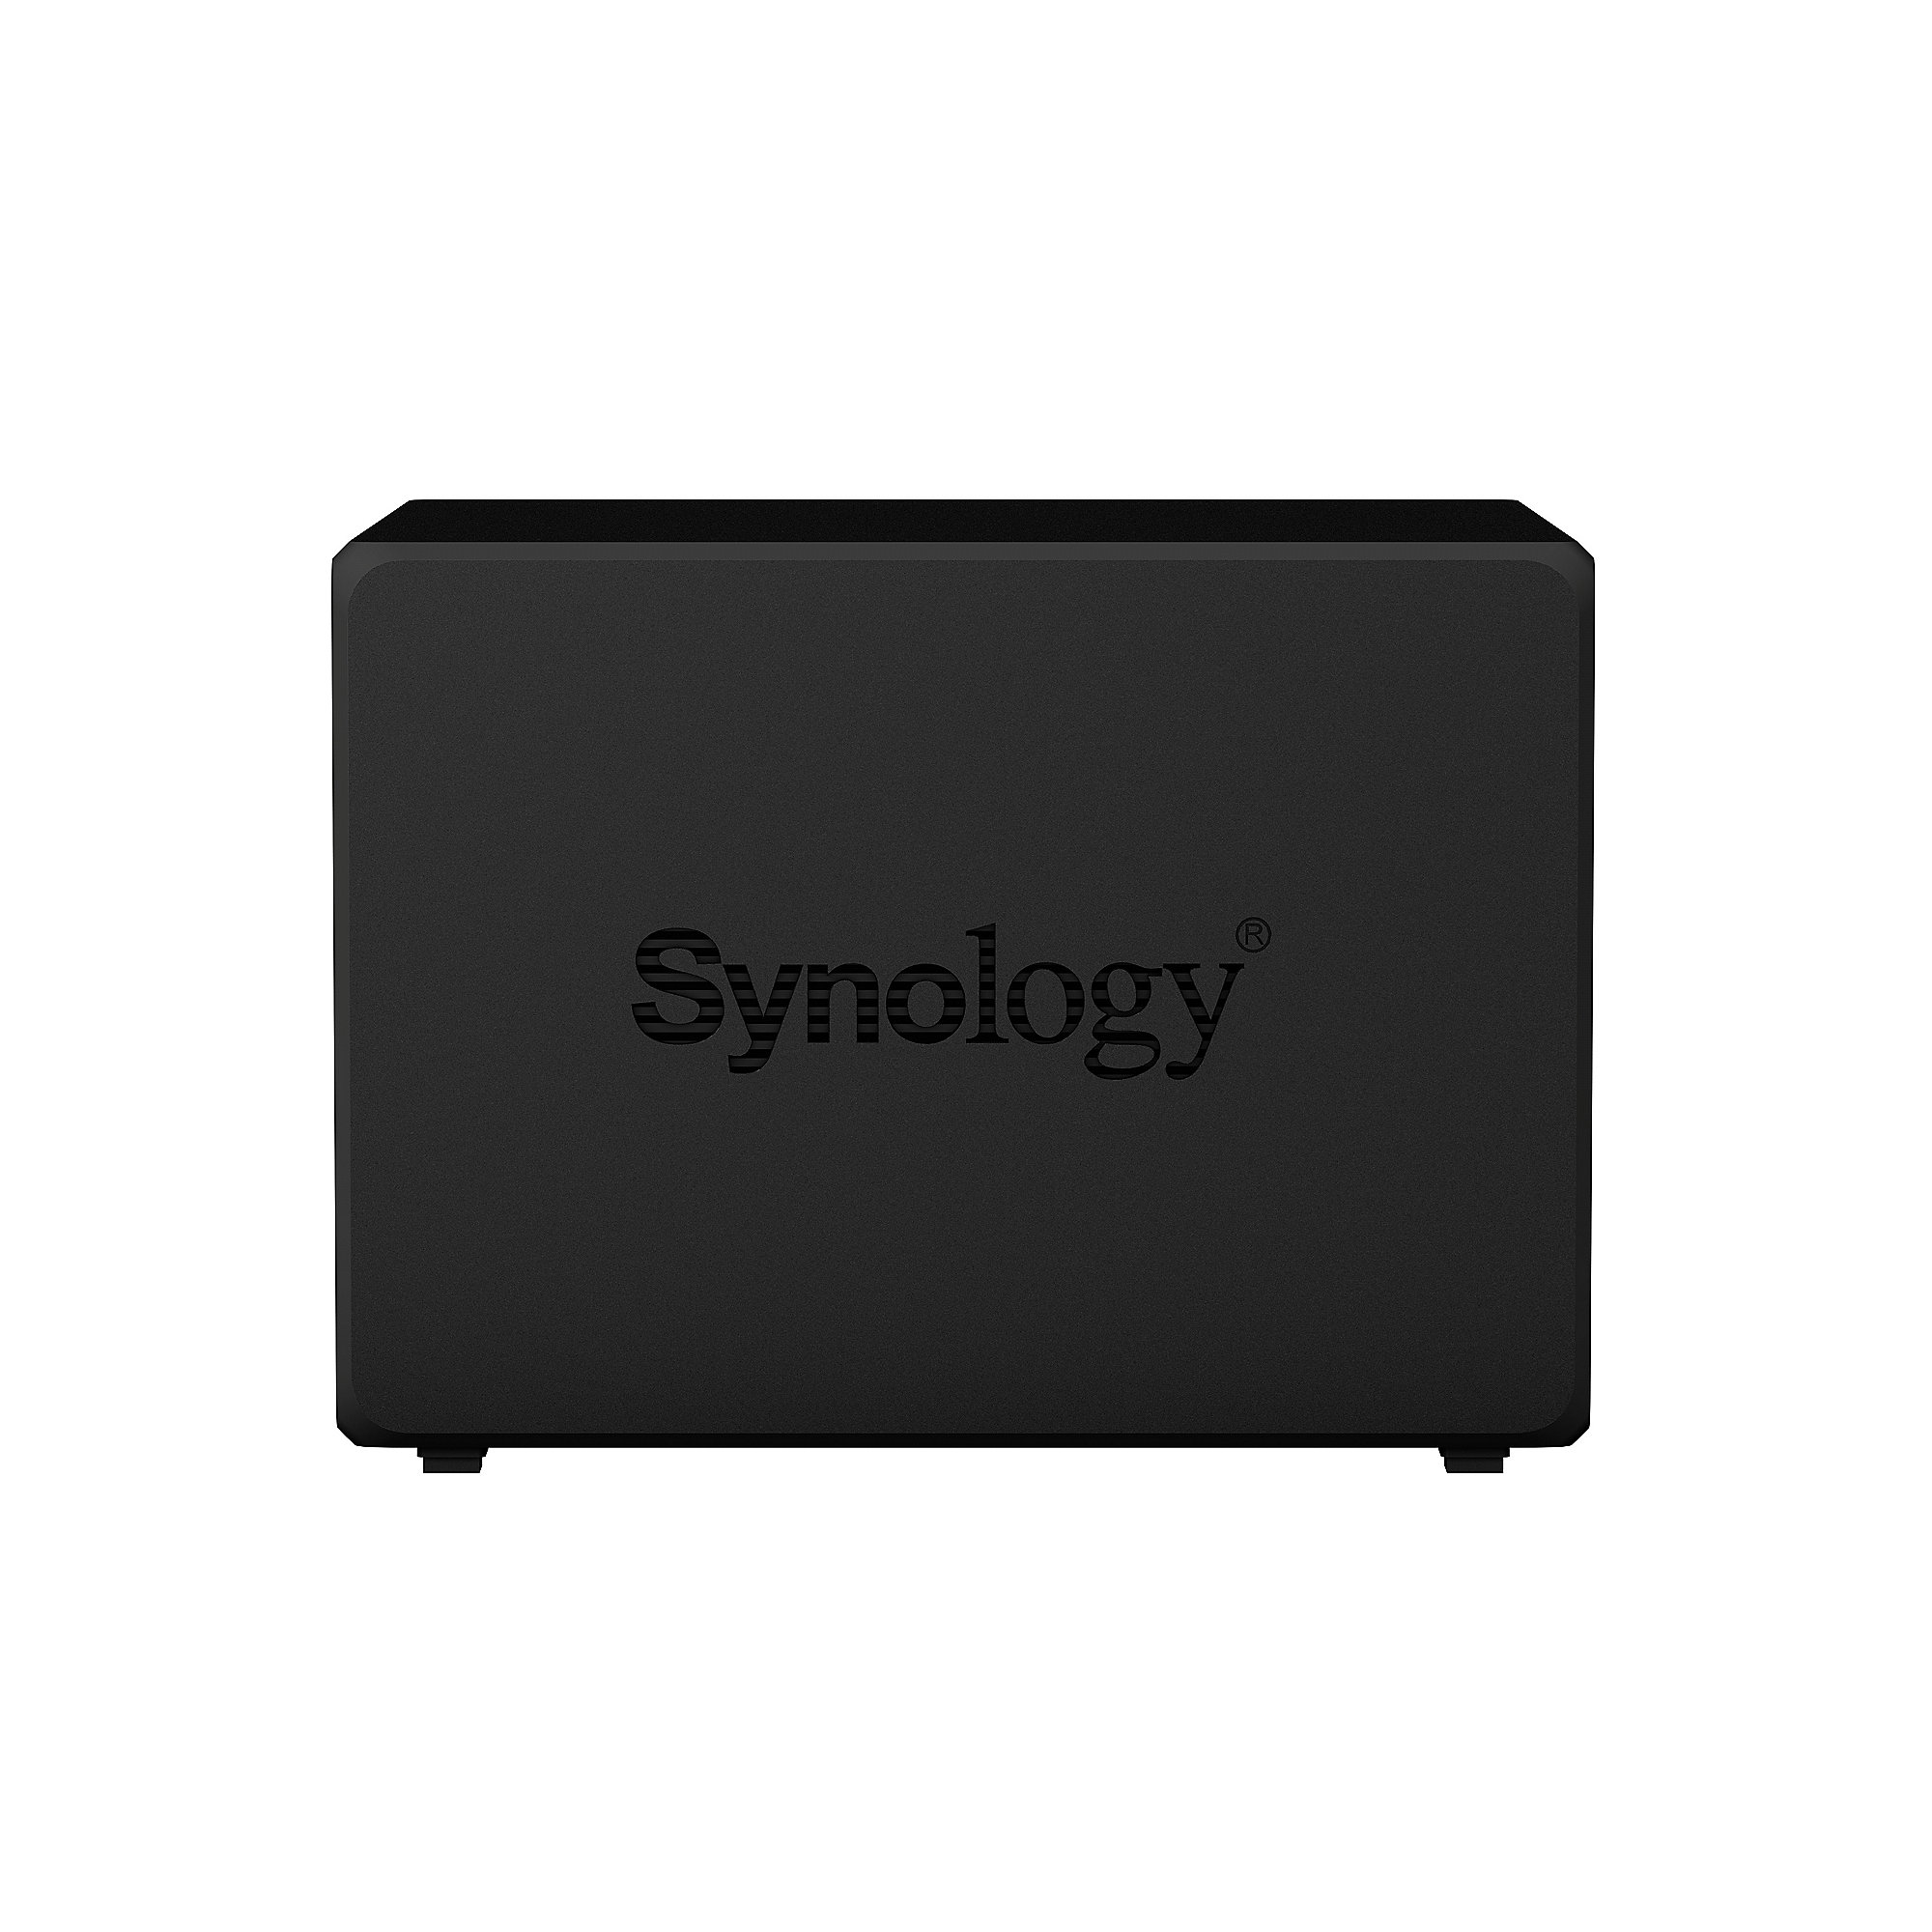 Synology DS918+ NAS System 4-Bay 8TB inkl. 4x 2TB Seagate ST2000VN004